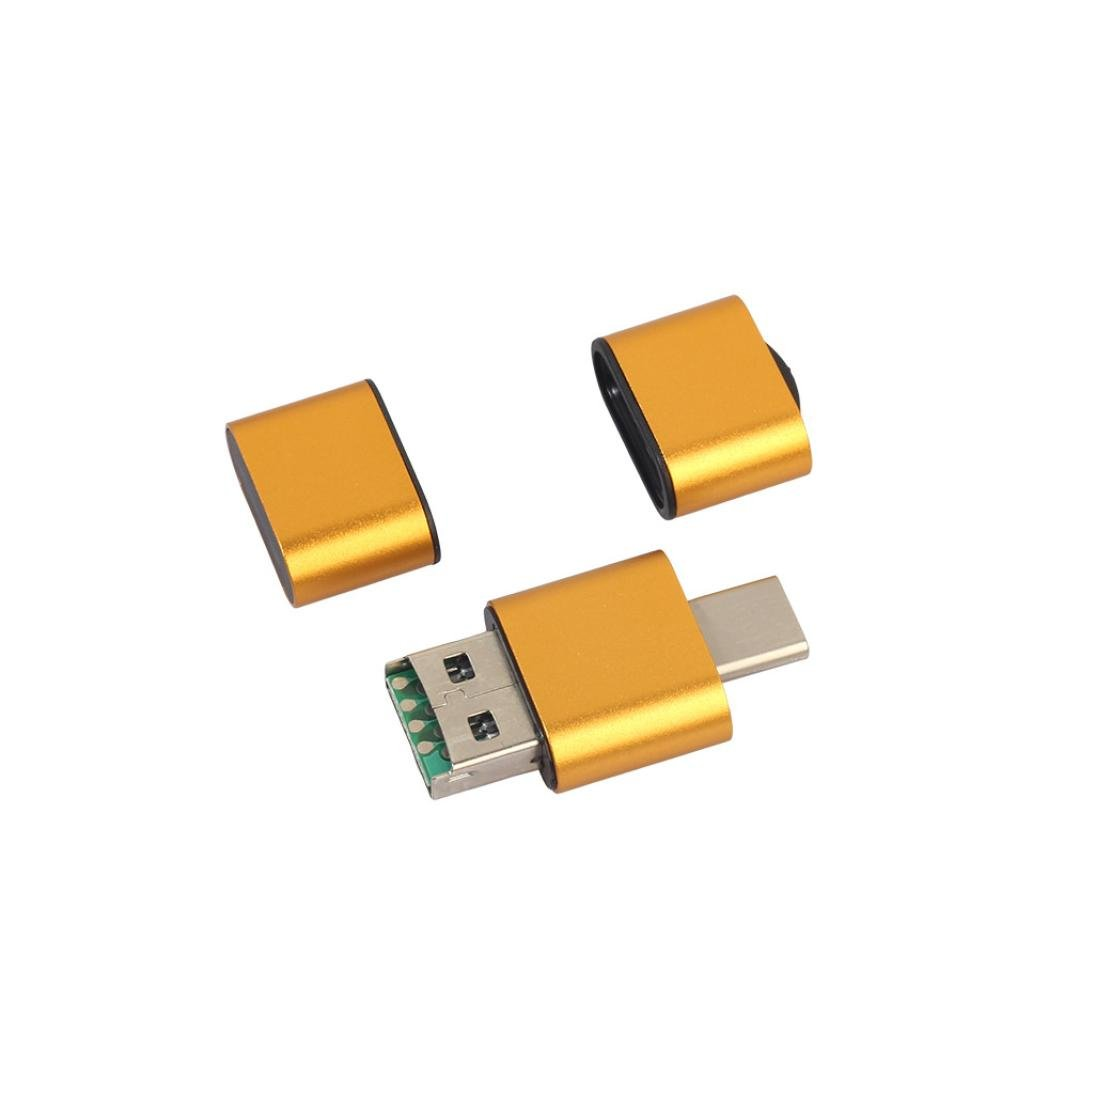 AutumnFall 2018 New OTG Type C To USB 2.0 TF/Micro SD Card Reader Adapter Type C Port For Android Phone (Gold)